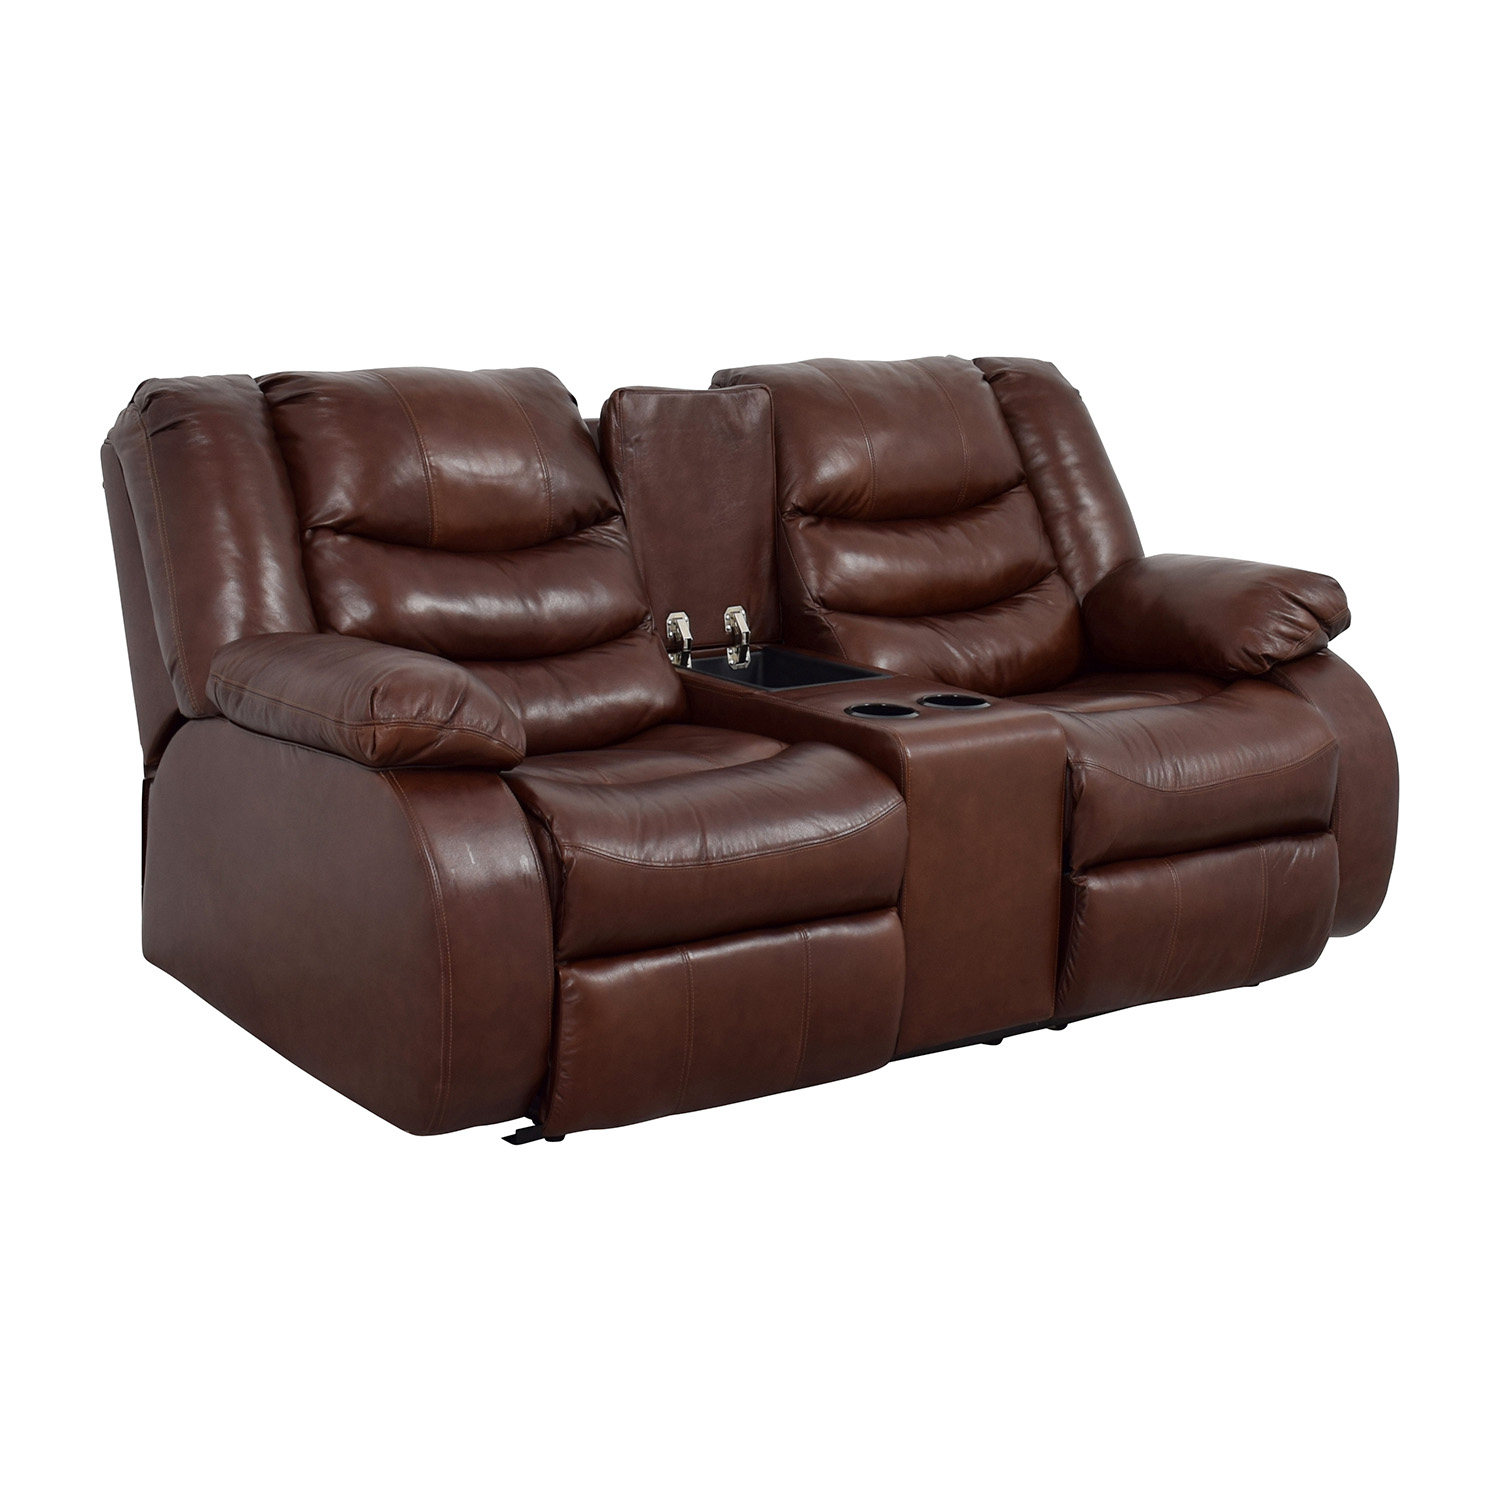 90% OFF - Ashley Furniture Ashley Furniture Brown Leather Reclining Couch /  Sofas